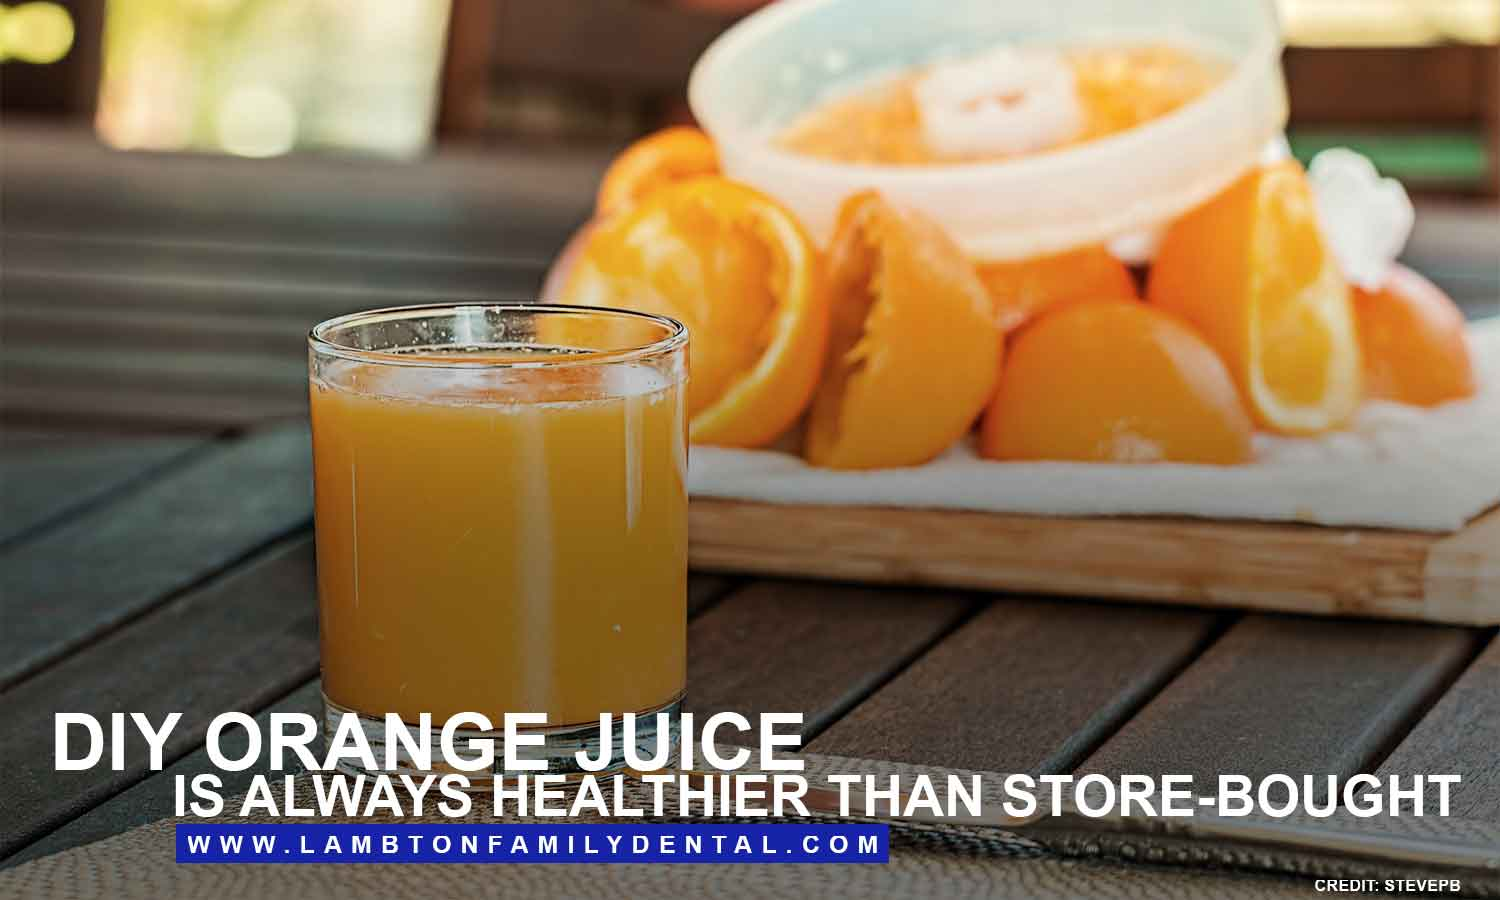 DIY orange juice is always healthier than store-bought